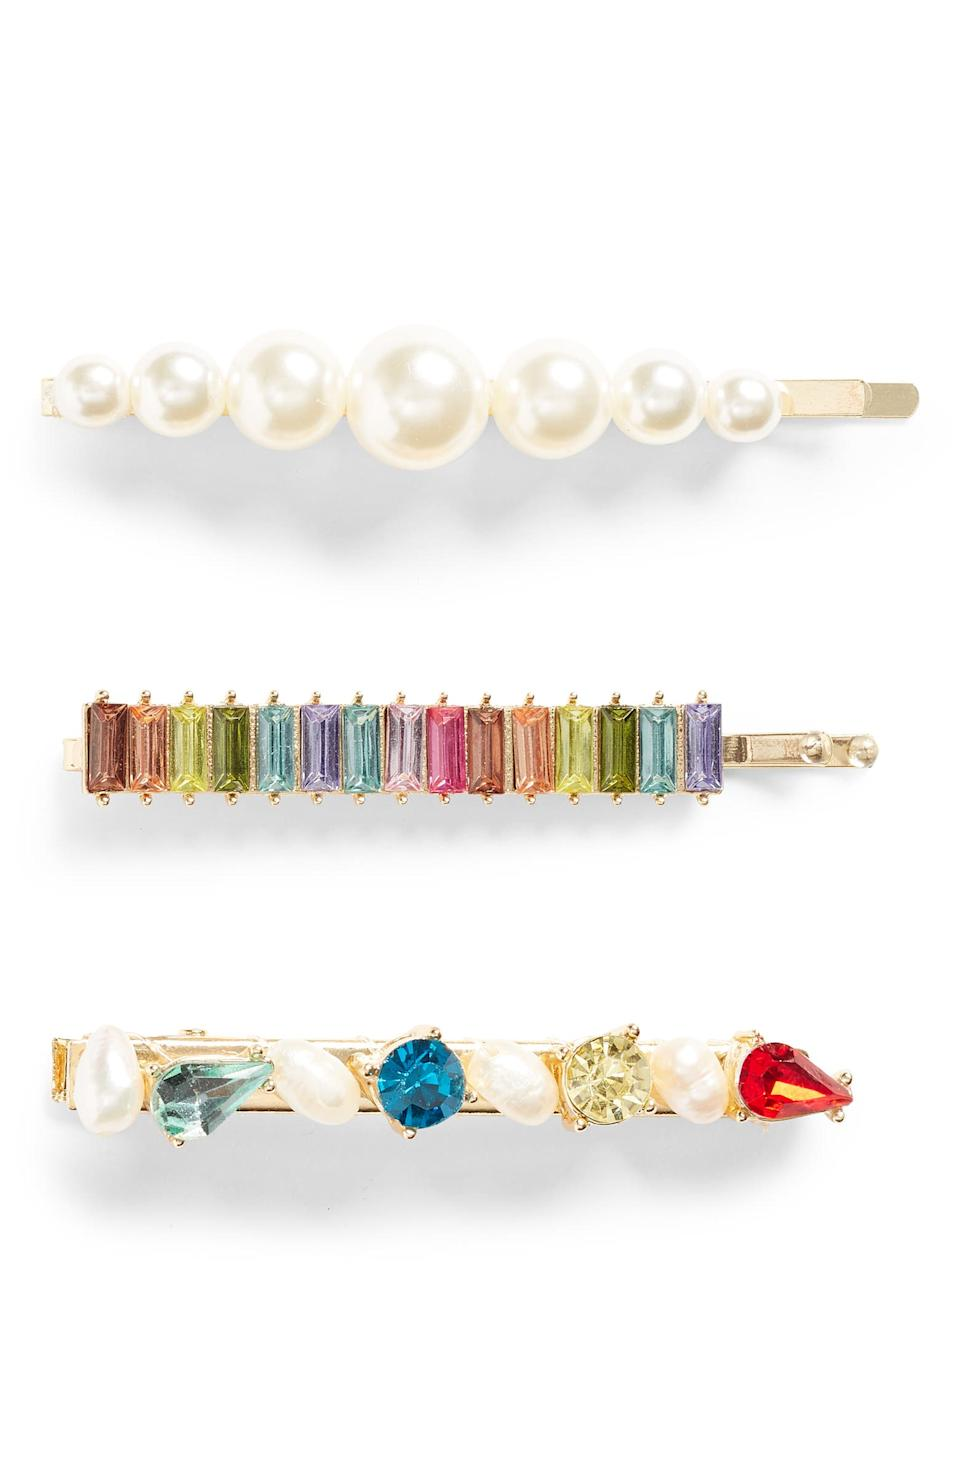 Pearl & crystal hair clips (photo courtesy of Nordstrom)